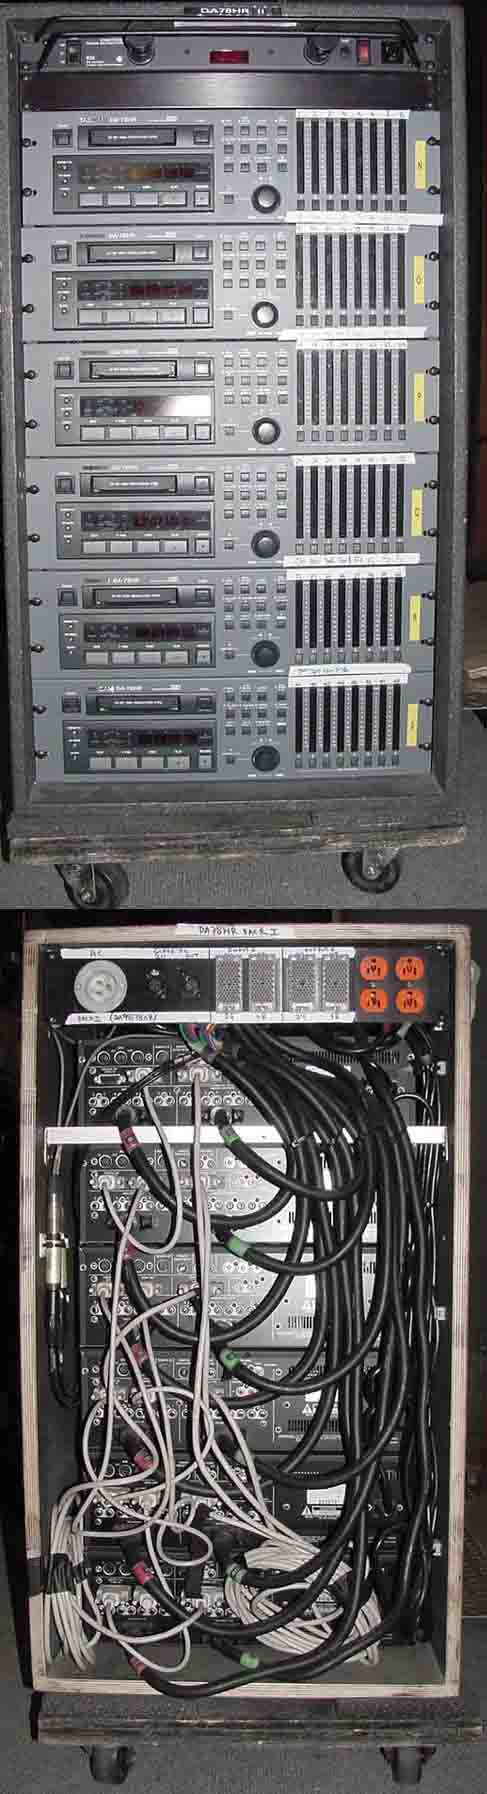 Steve Wiring Racks And Organization Gearslutz Basic Electrical About Dtrs78hr